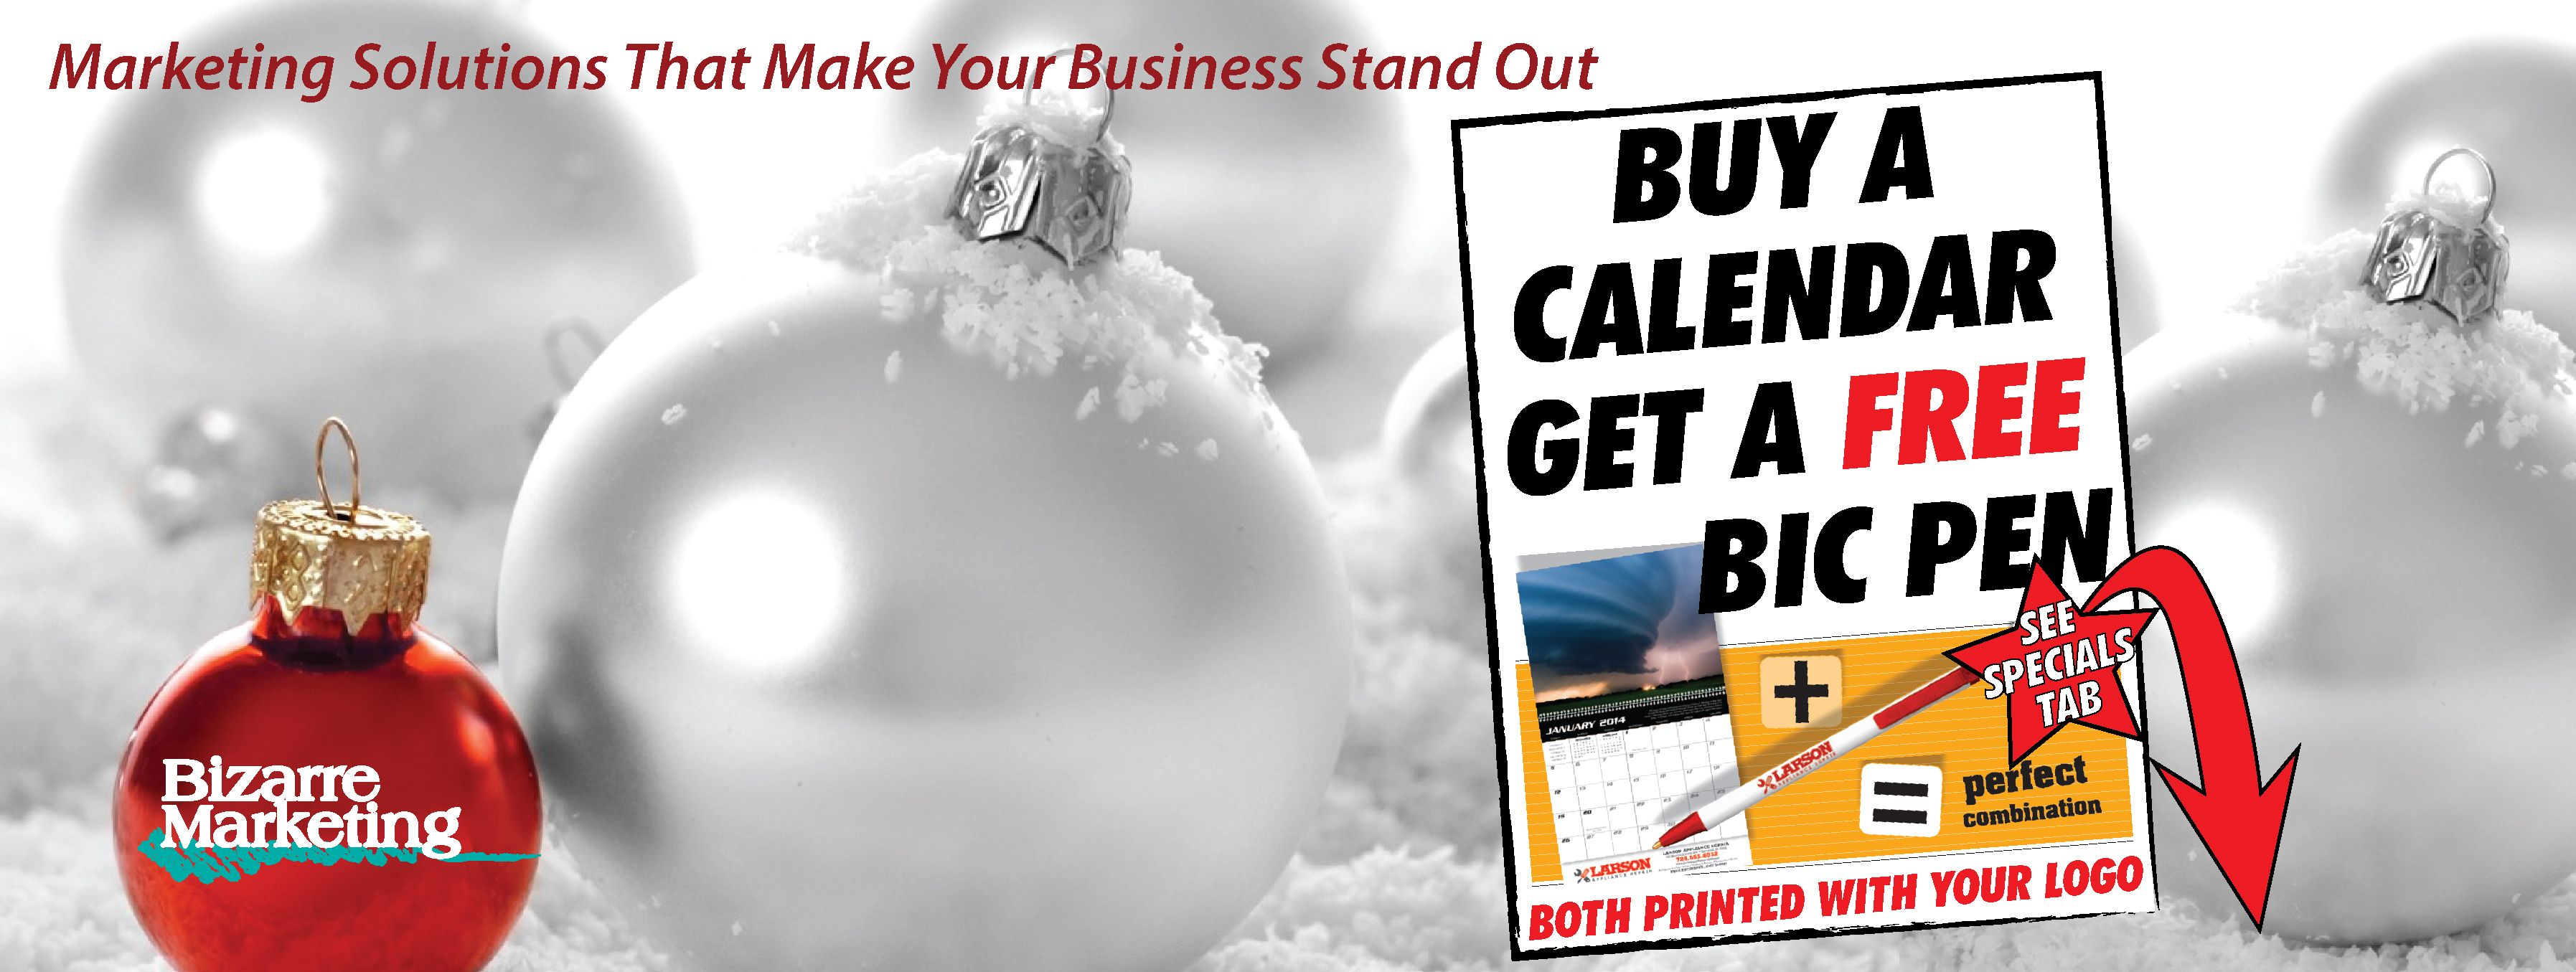 Buy A Calendar Get A Free Bic Pen Both With Your Logo